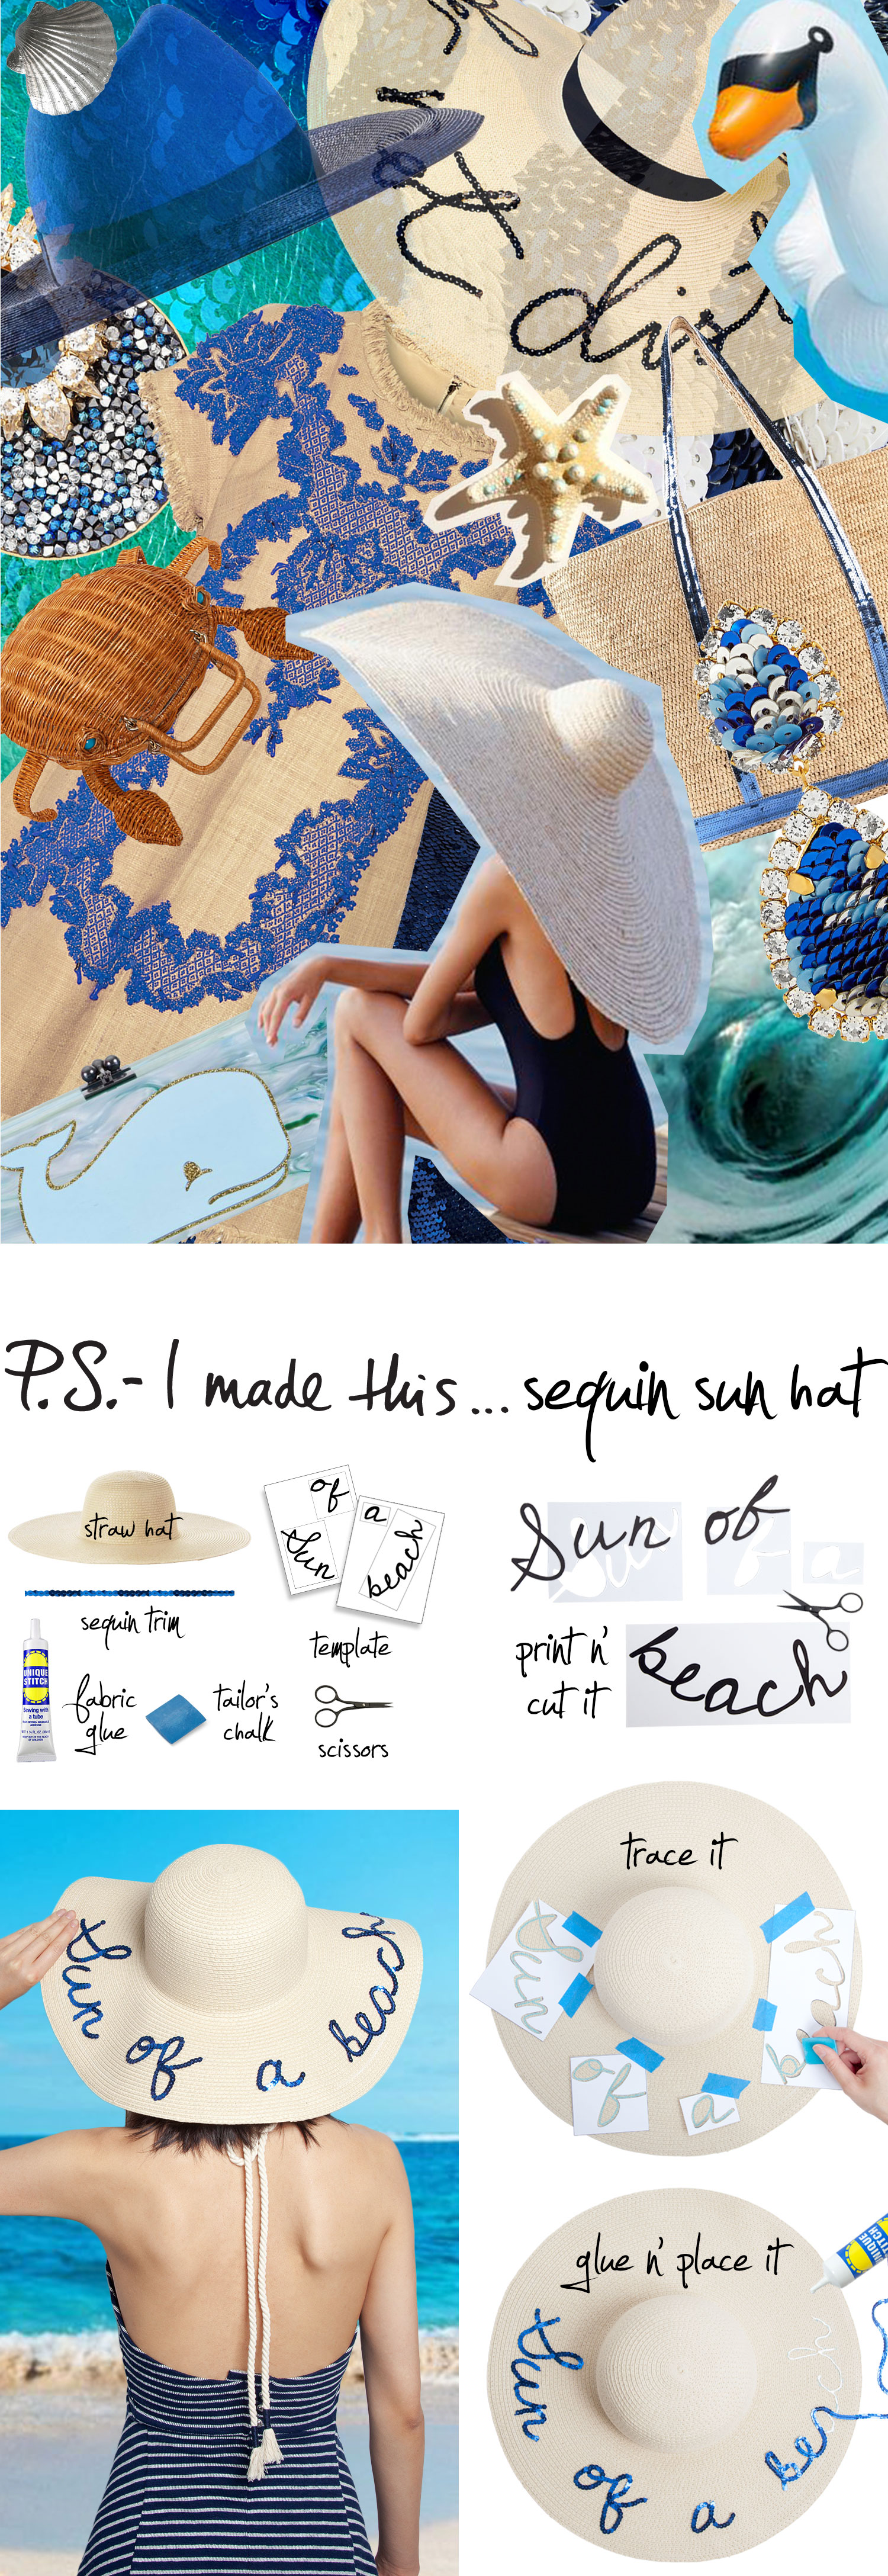 07.16.15_Sequin-Sun-Hat